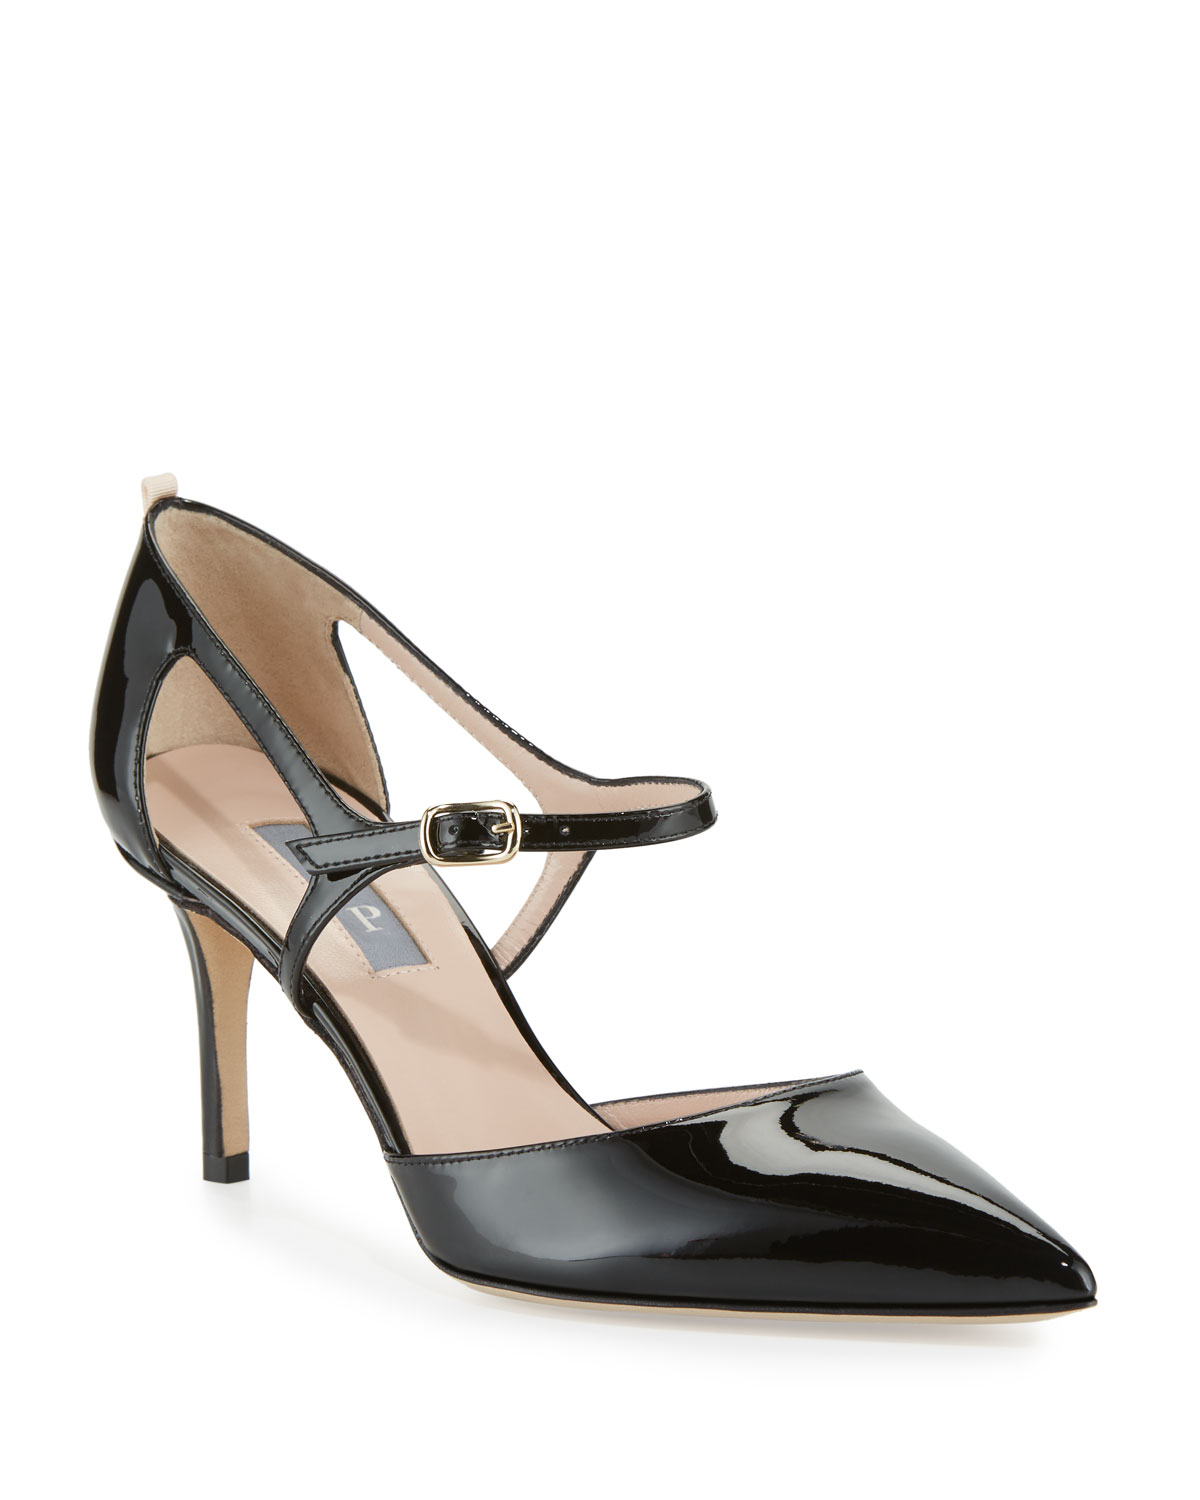 SJP by Sarah Jessica Parker Phoebe Patent Mary Jane Pumps 3ade20dfd0fb